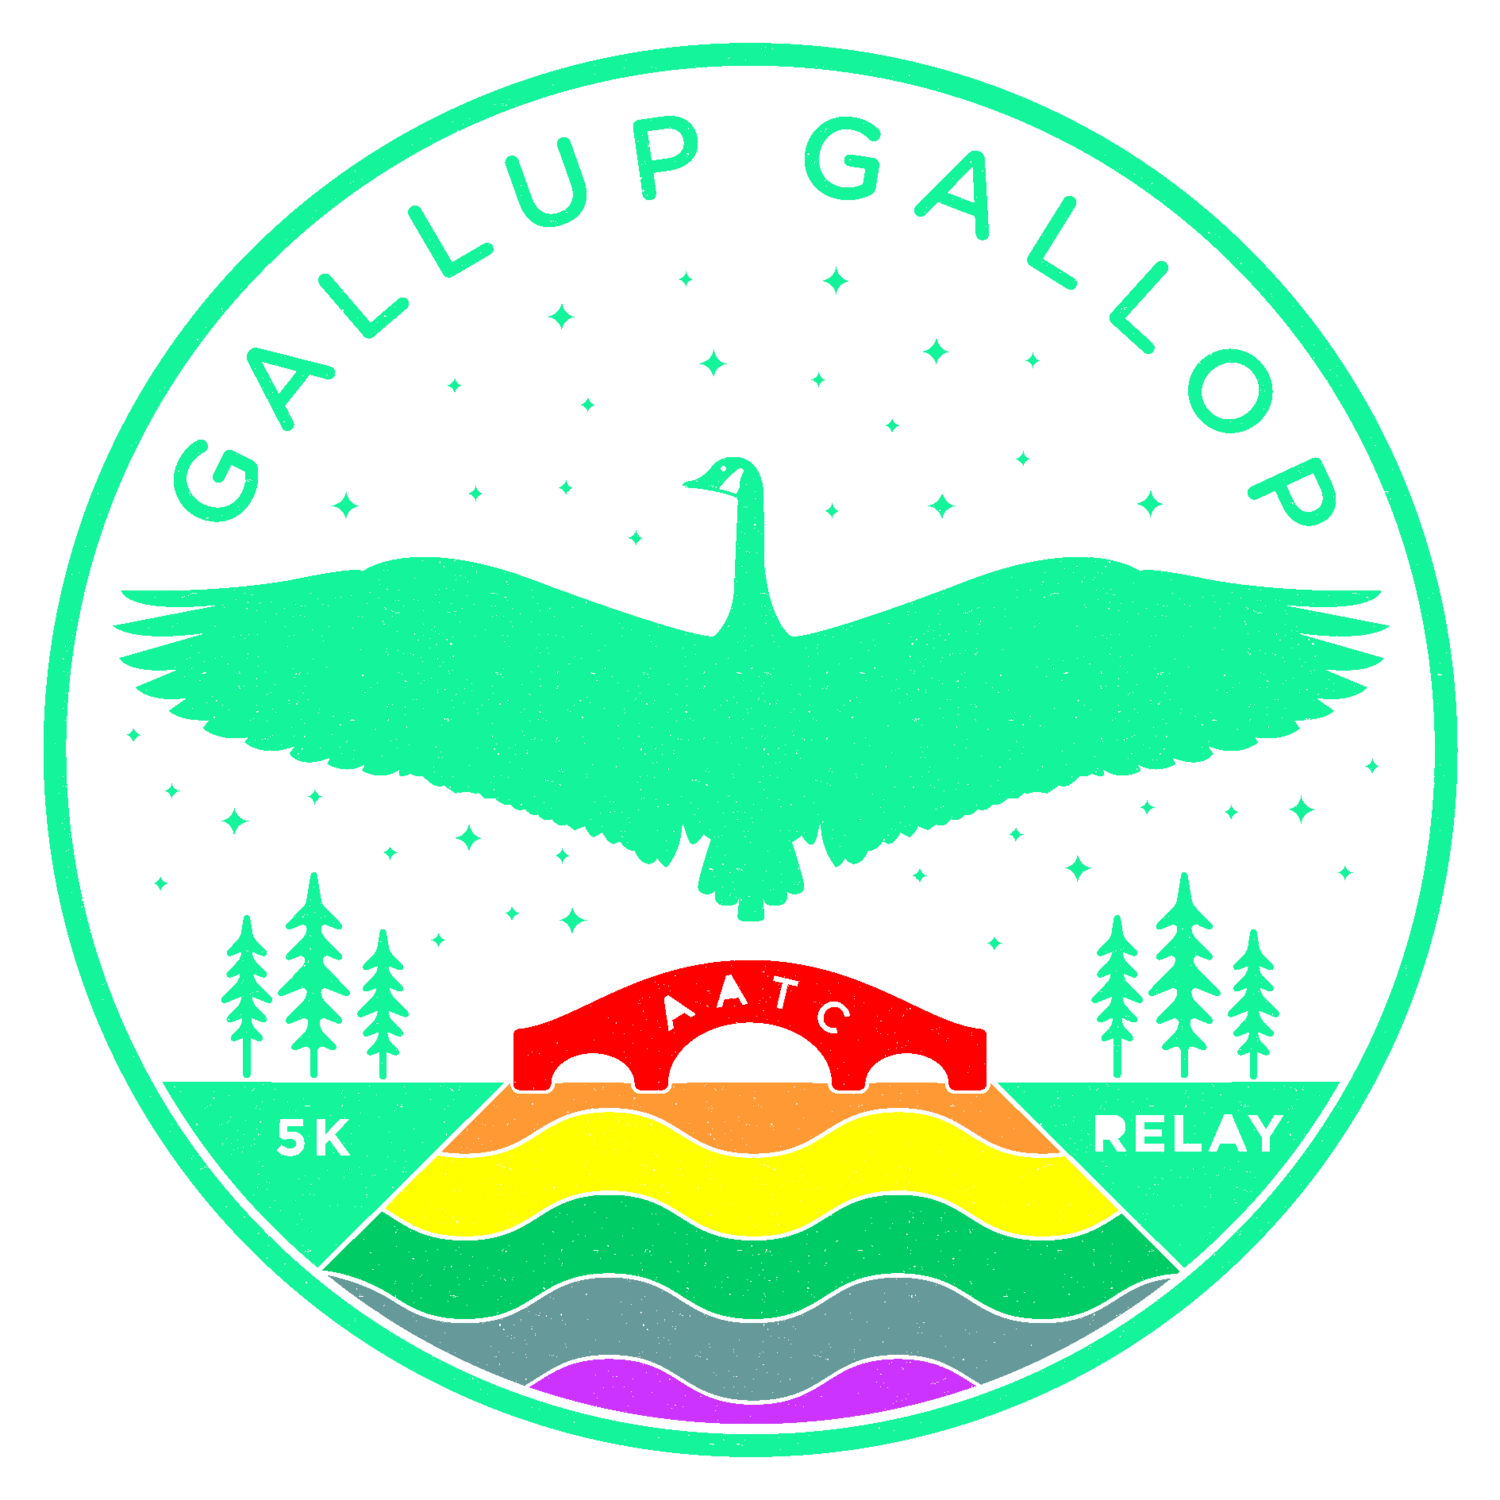 GALLUP GALLOP FRIDAY NIGHT 5K | RELAY